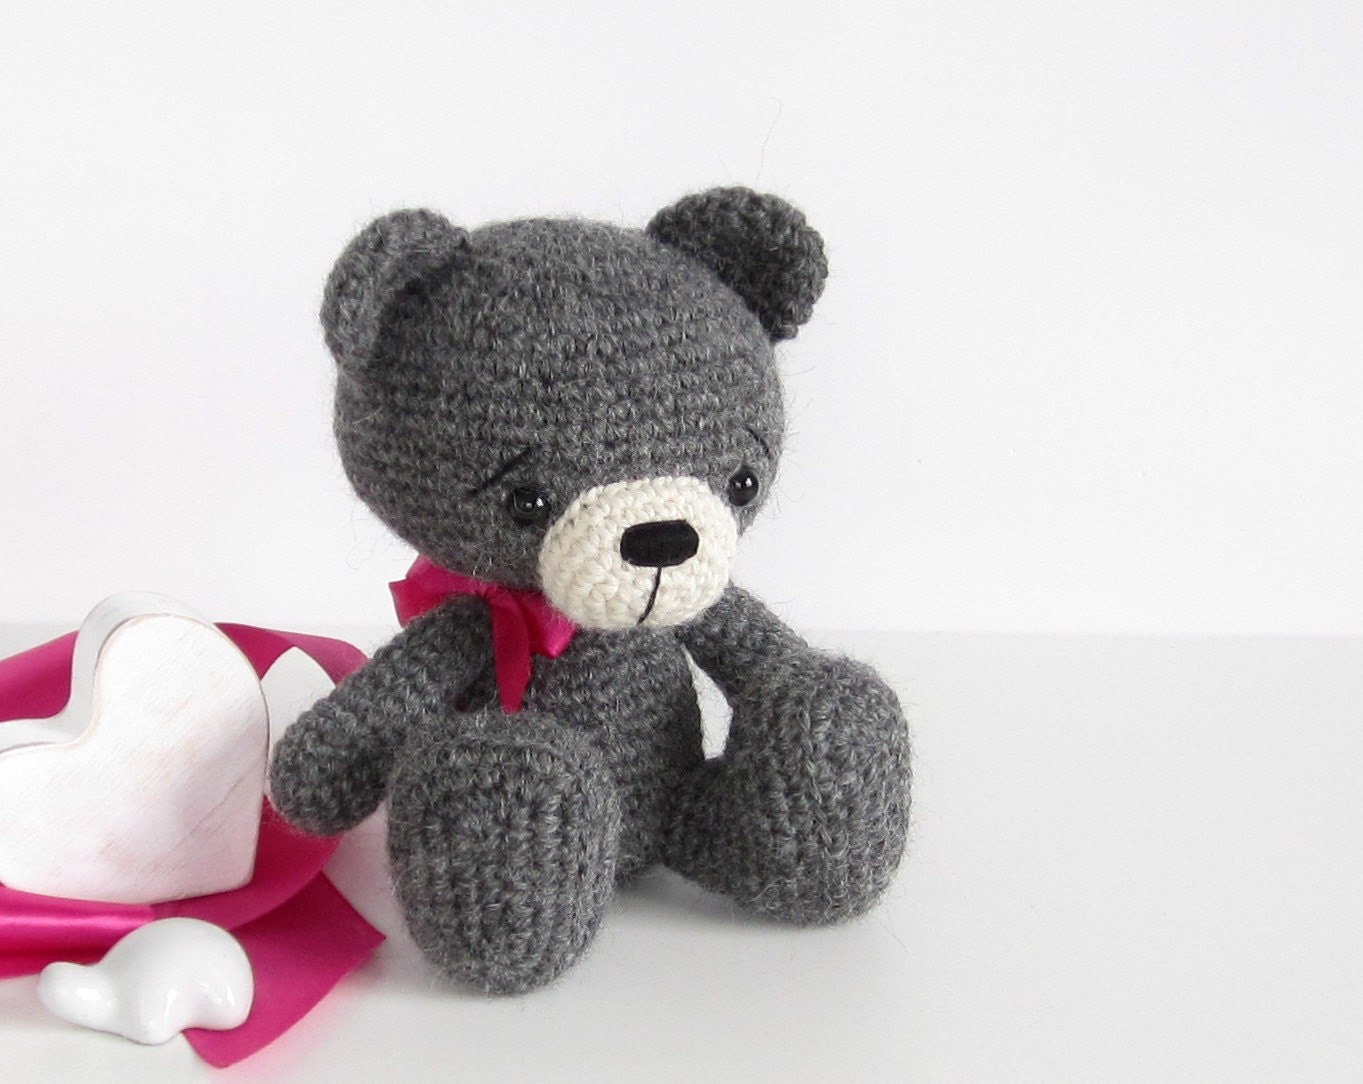 Amigurumi Teddy Bear Pattern : PATTERN: Teddy Bear Crocheted sitting bear Amigurumi